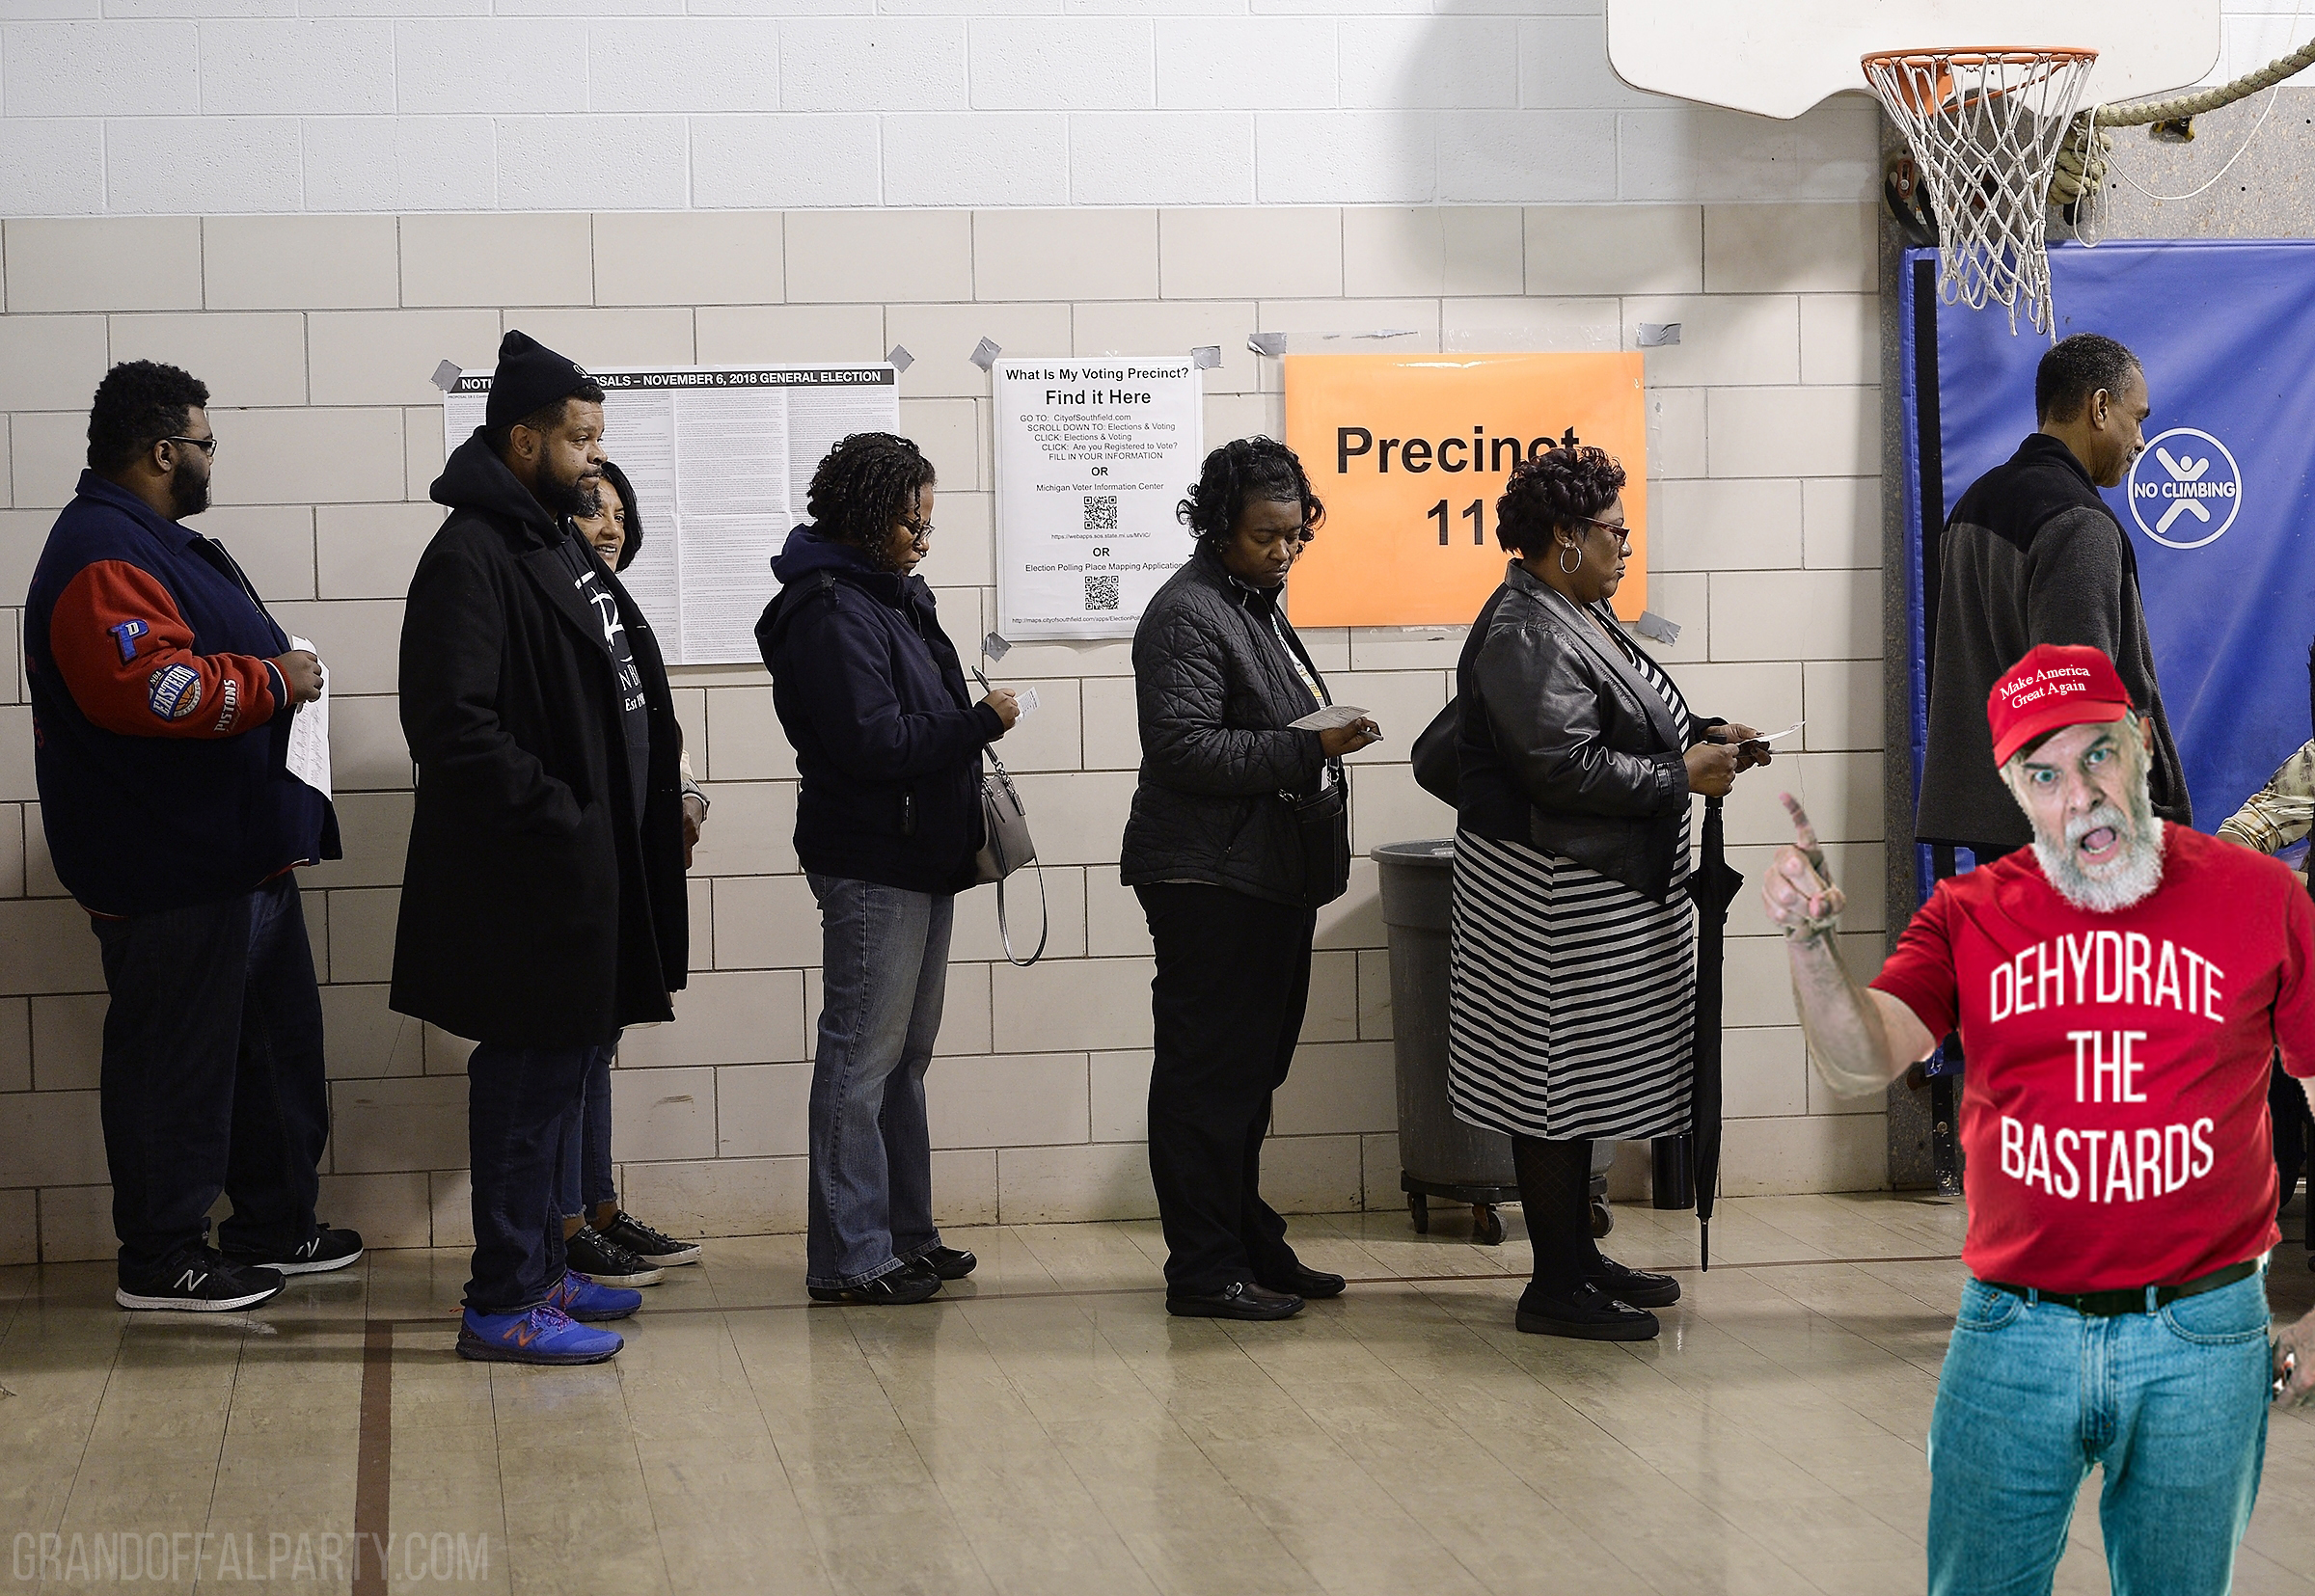 maga protestor at polling place with black voters